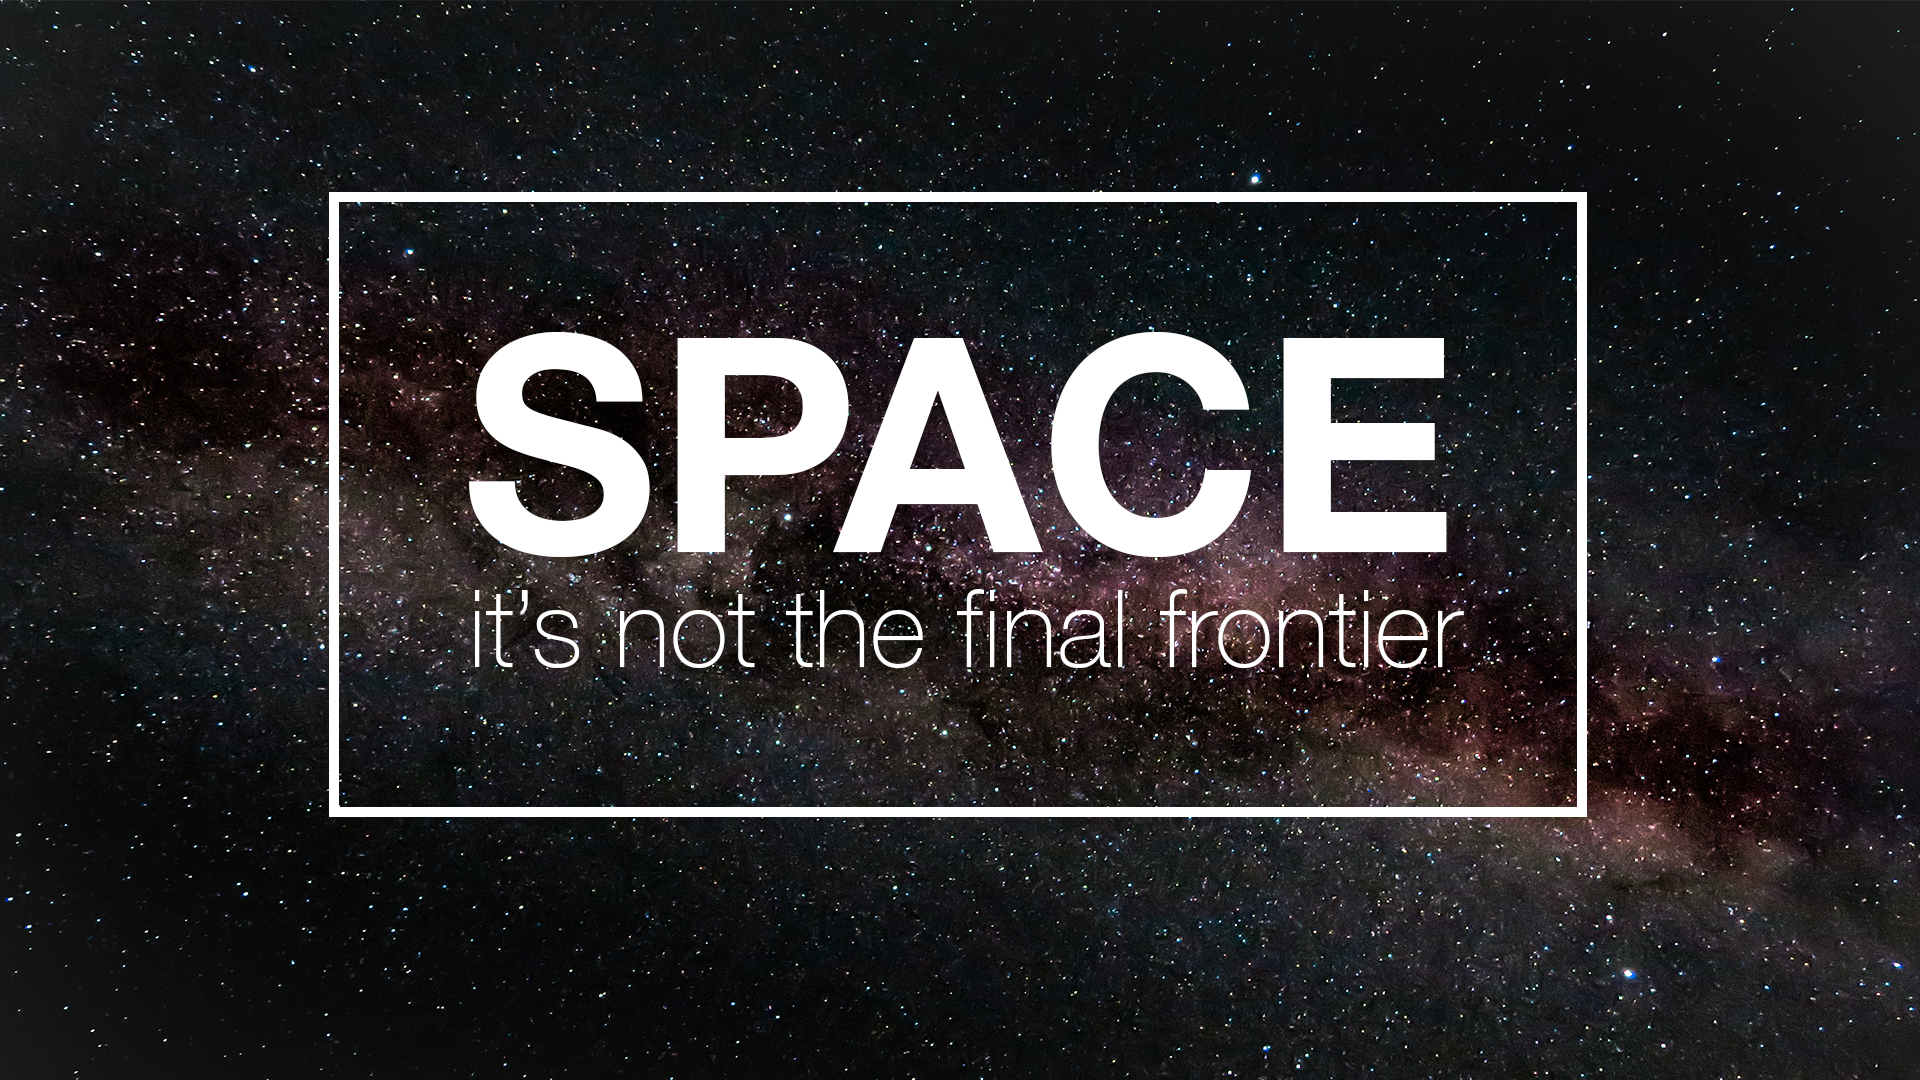 space the final frontier Space the final frontier these are the voyages of the starship enterpriseit's continuing mission,to explore strange new worlds,to seek out new life and ne.